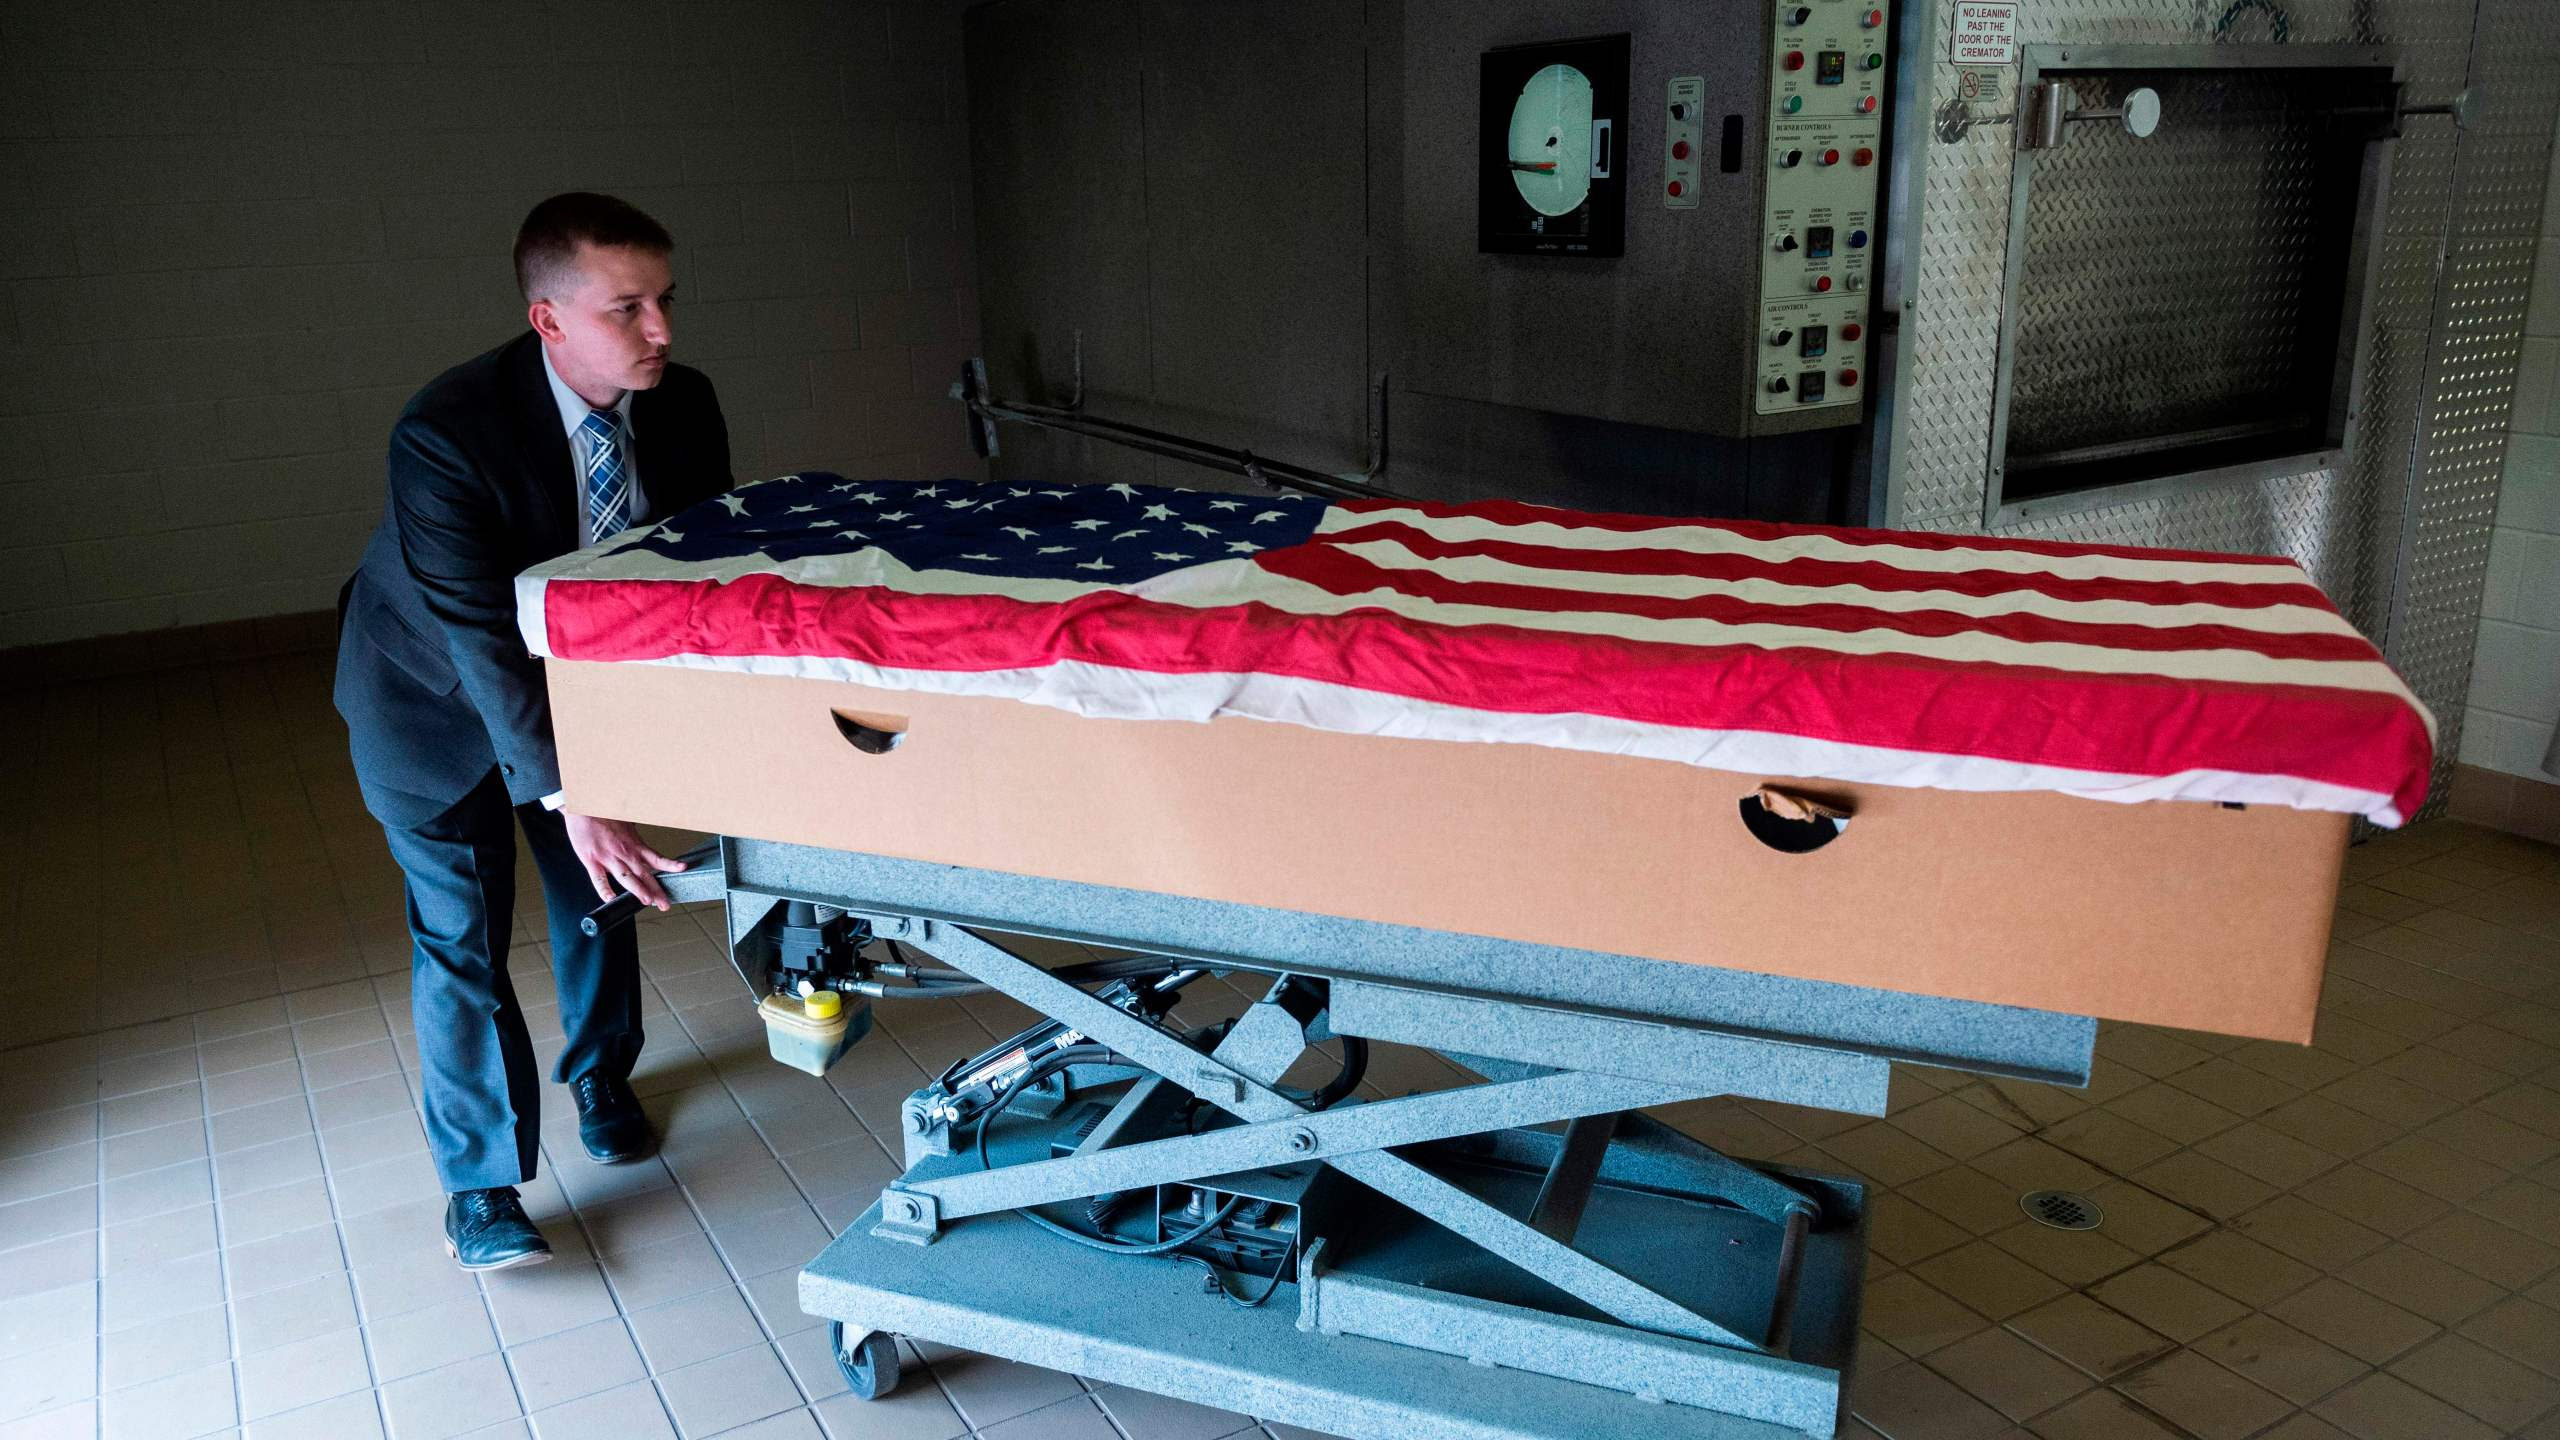 Crematory operator Brandon Cochran pushes a cremation box draped in a U.S. national flag, containing the body a veteran who died of COVID-19, to an incinerator at the Stauffer Funeral Homes in Frederick, Maryland on May 1, 2020. (ANDREW CABALLERO-REYNOLDS/AFP via Getty Images)